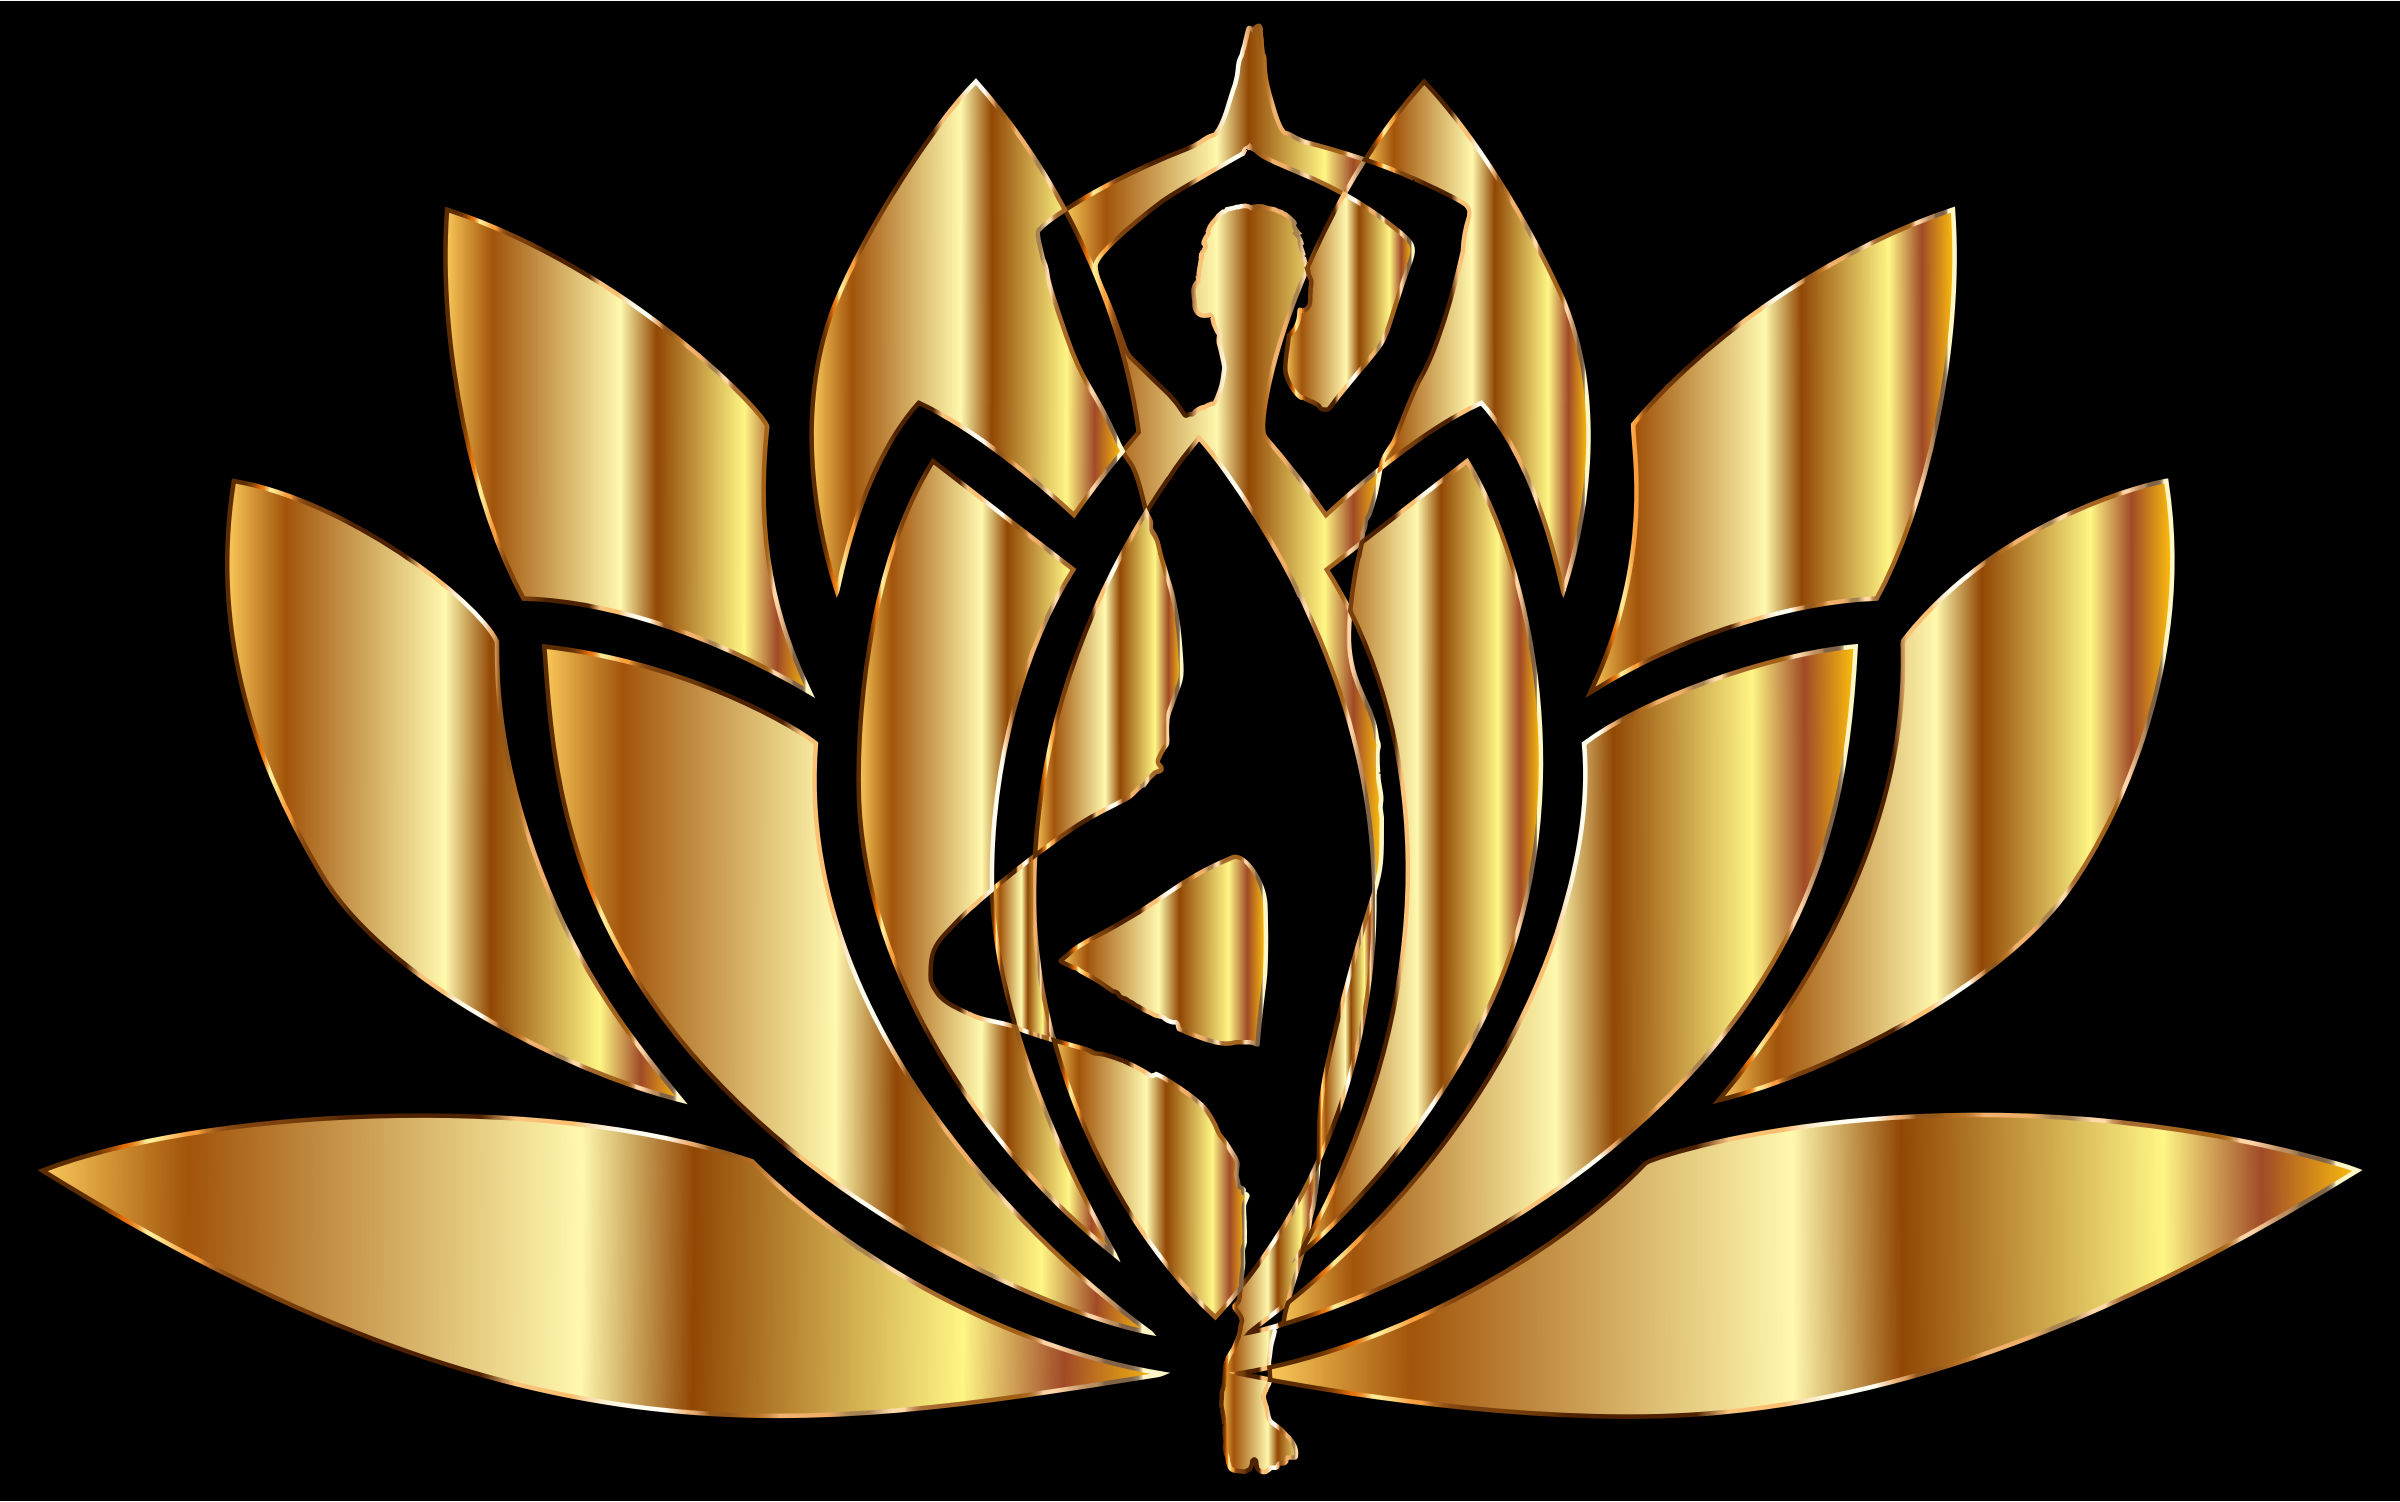 Gold Yoga Lotus by GDJ